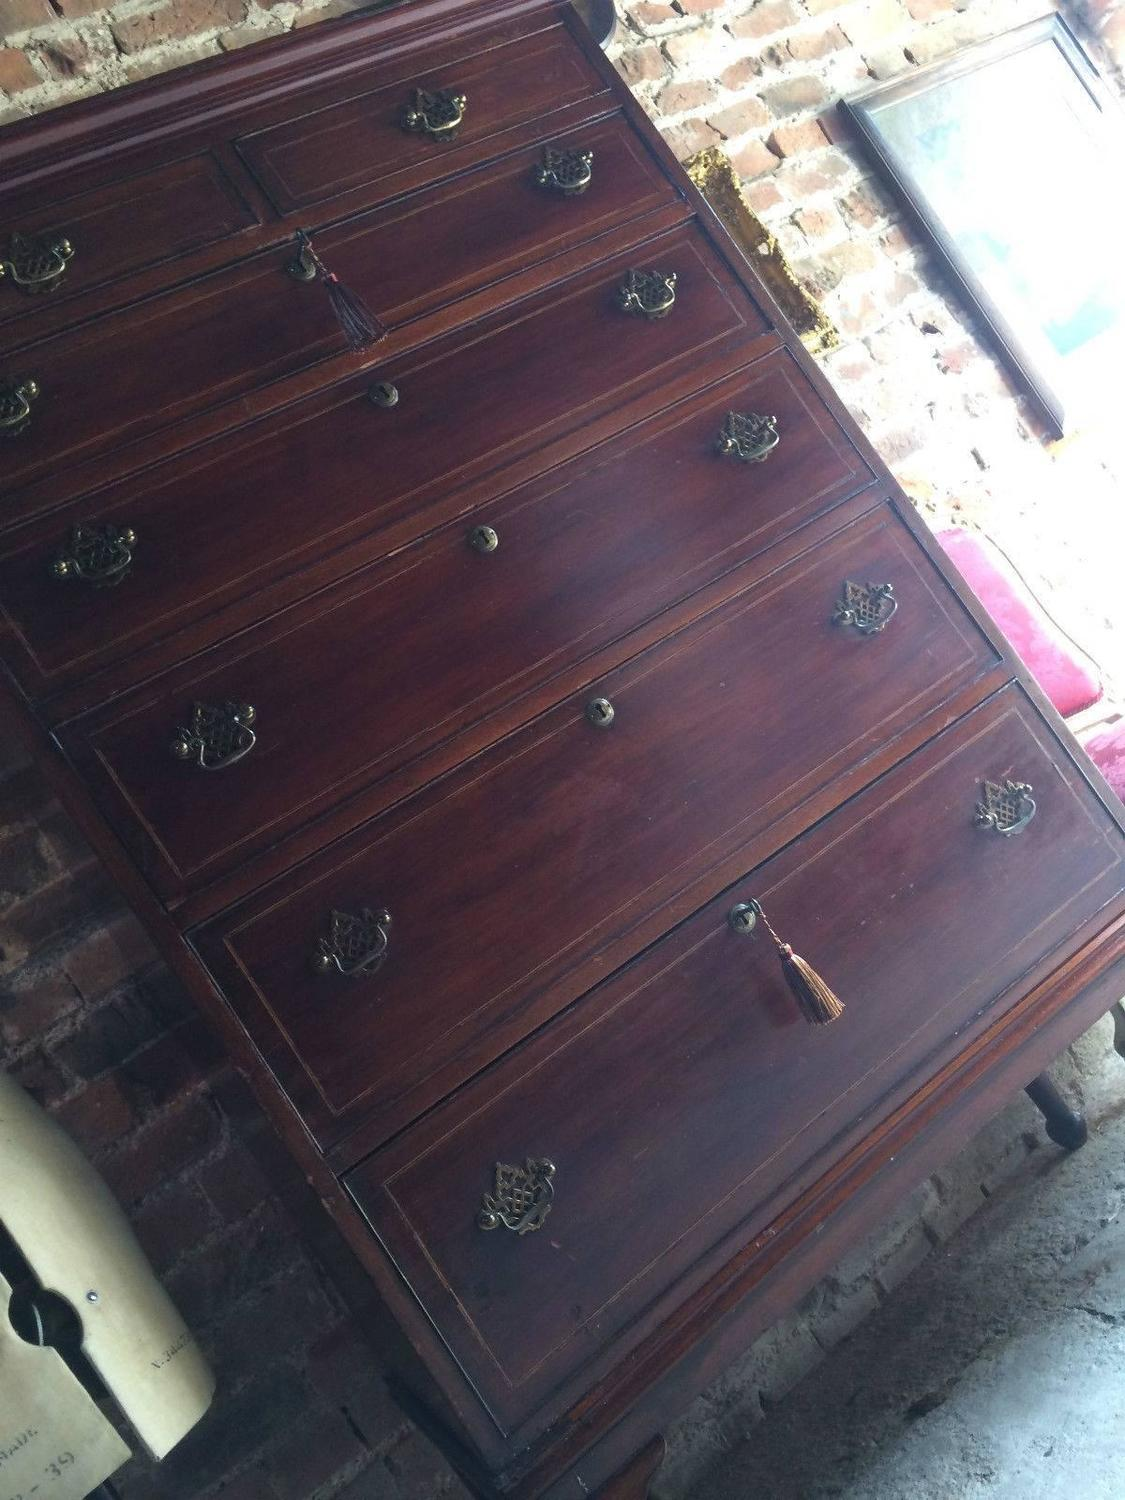 #496F82 Antique Tallboy Chest Of Drawers Dresser Mahogany 19th  with 1125x1500 px of Highly Rated Vintage Tallboy Chest Of Drawers 15001125 picture/photo @ avoidforclosure.info